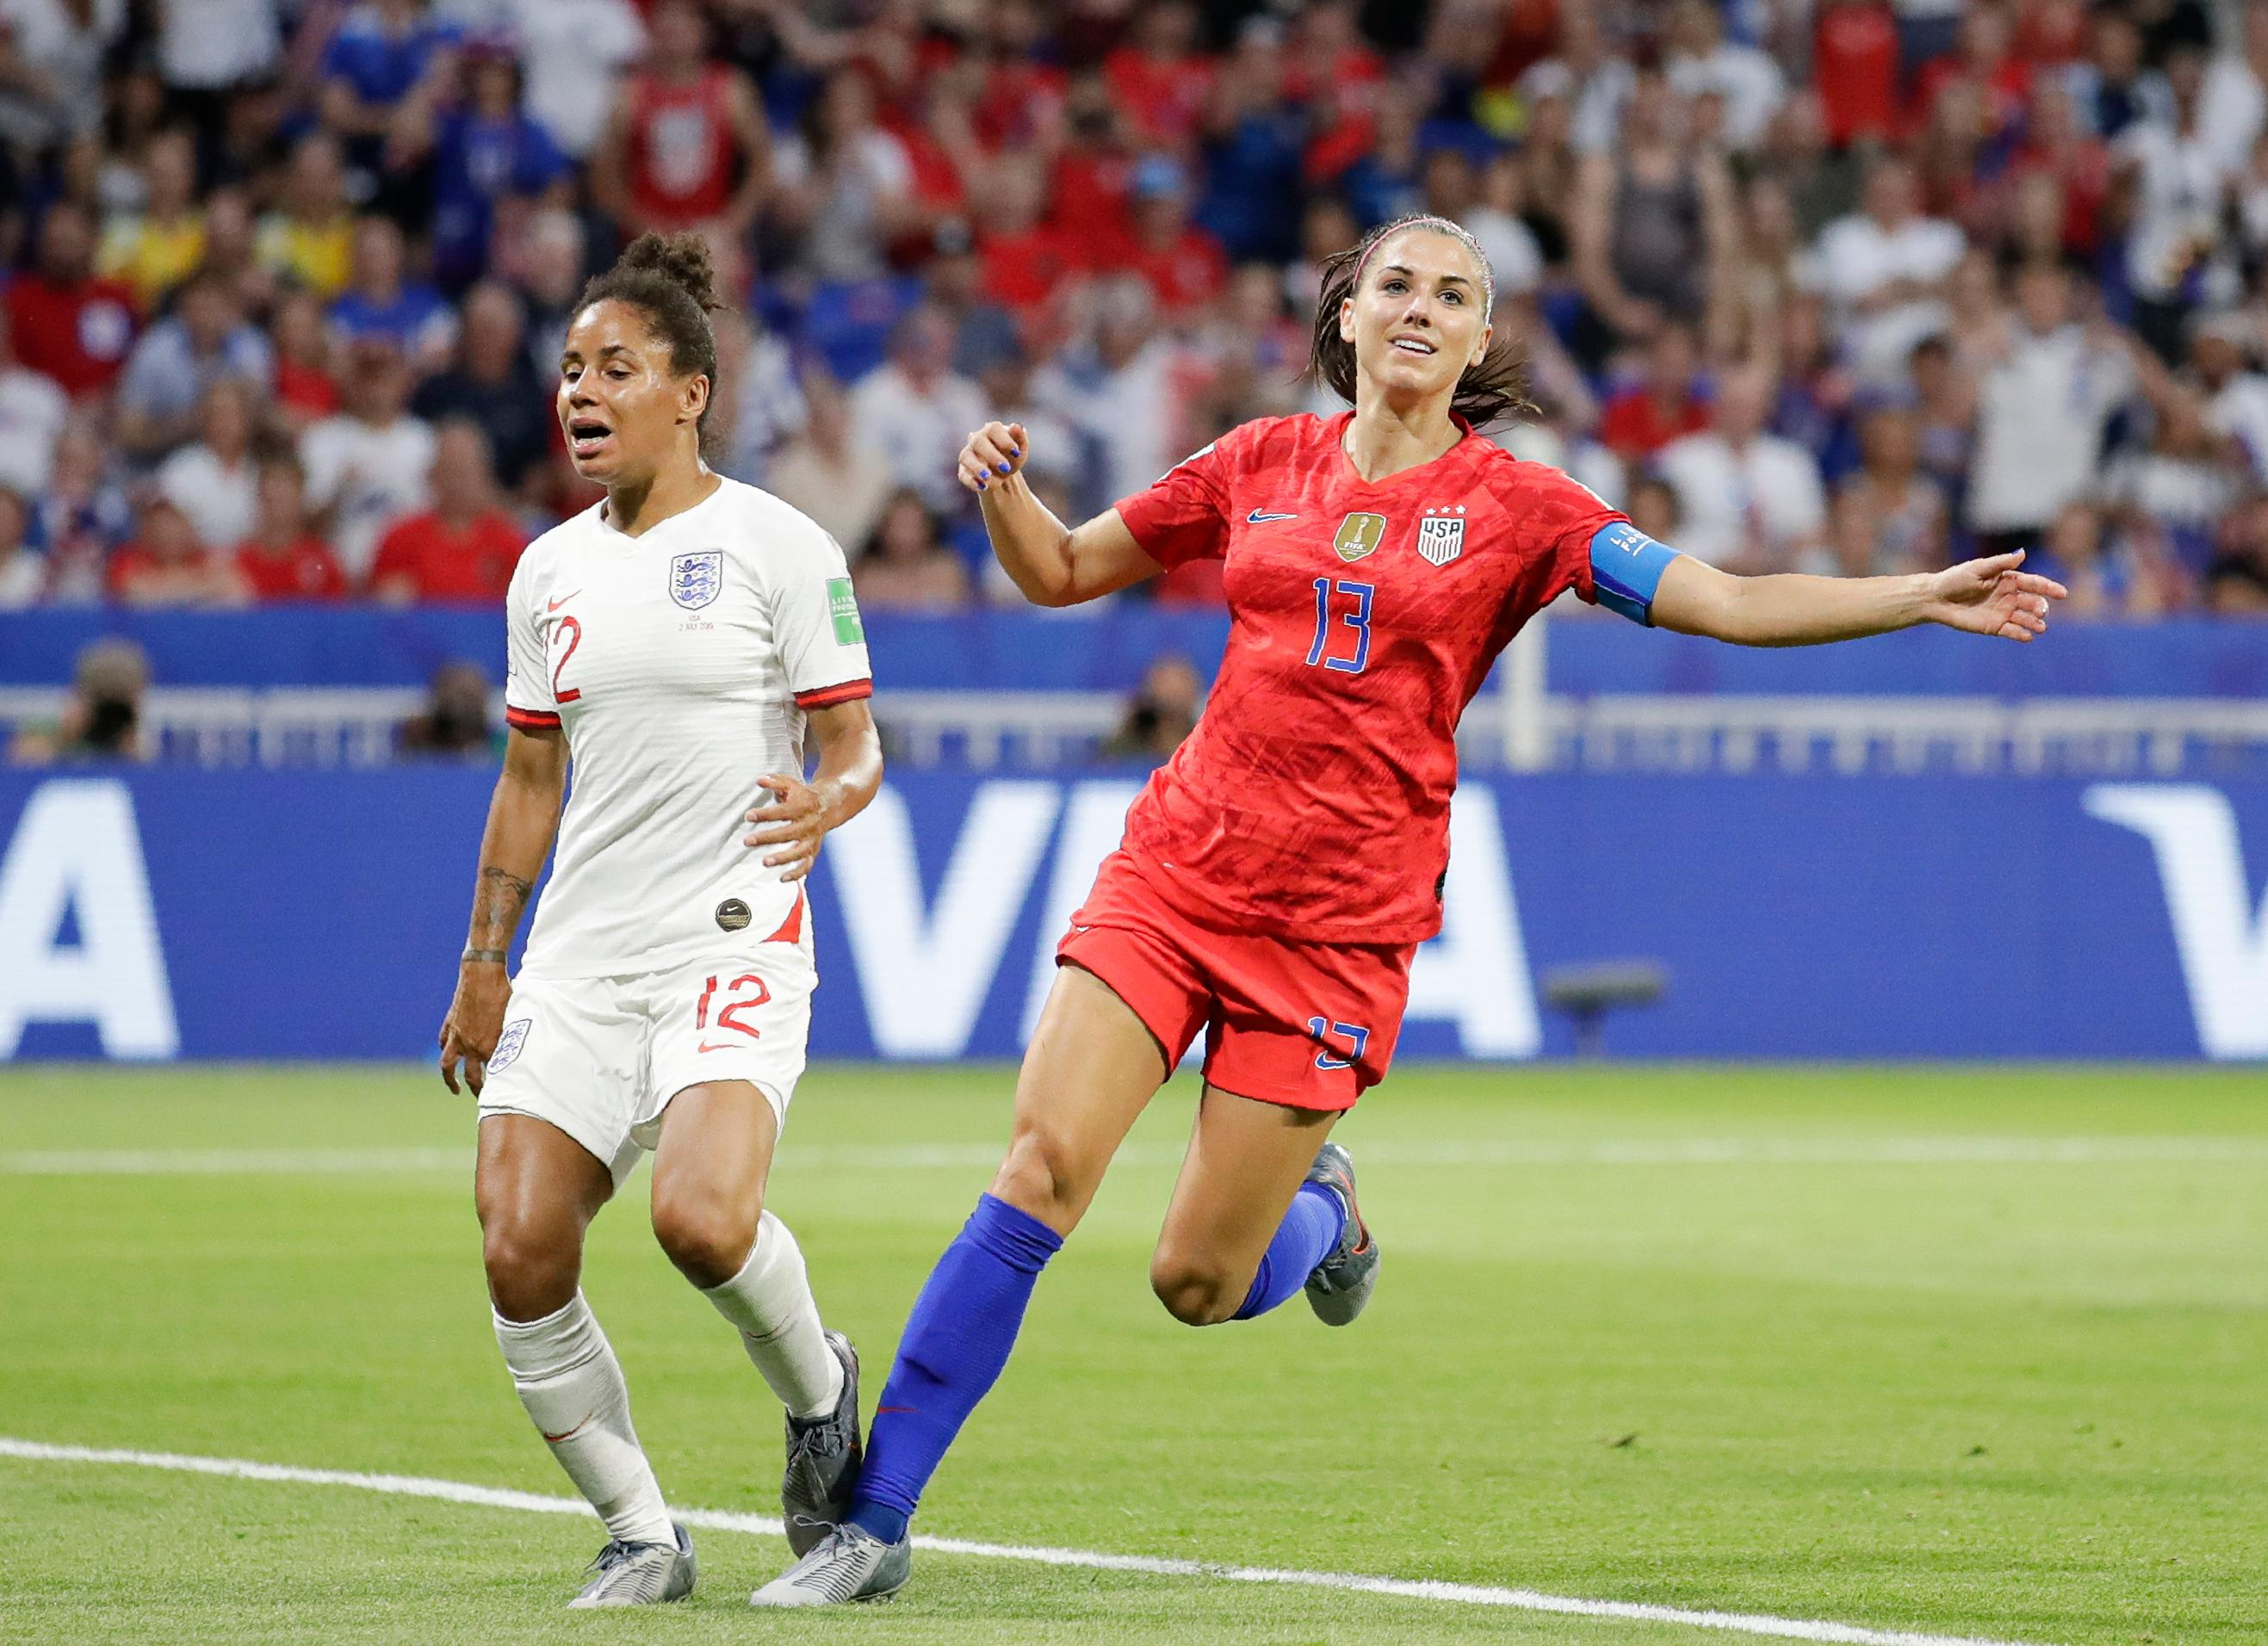 United States' Alex Morgan, right, celebrates after scoring her side's second goal next to England's Demi Stokes during the Women's World Cup semifinal soccer match between England and the United States, at the Stade de Lyon, outside Lyon, France, Tuesday, July 2, 2019. (AP Photo/Alessandra Tarantino)